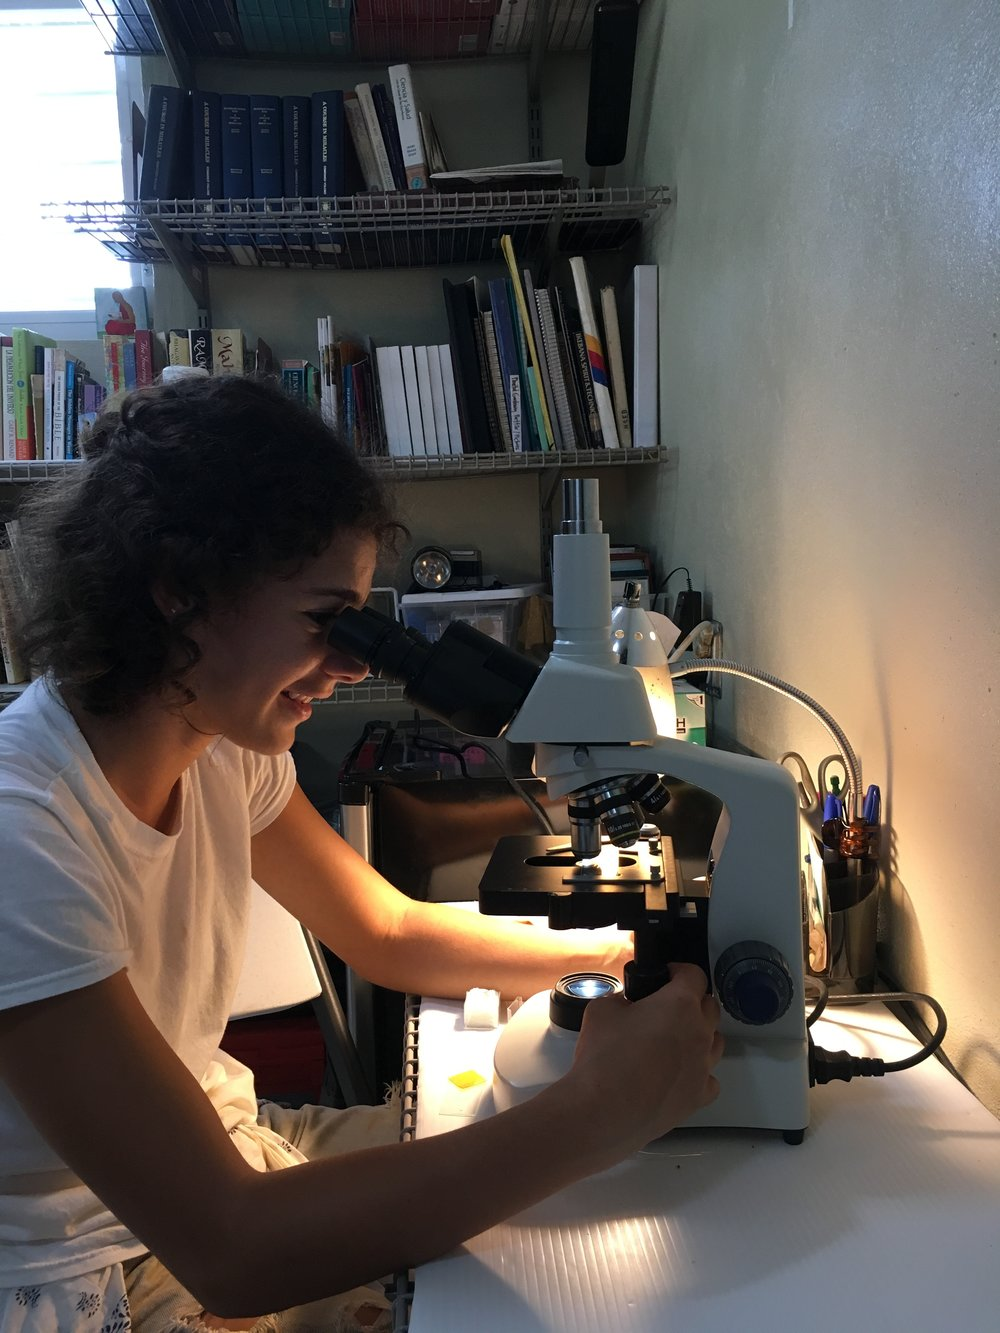 Alejandra, biology student, working on her practice at Plenitud